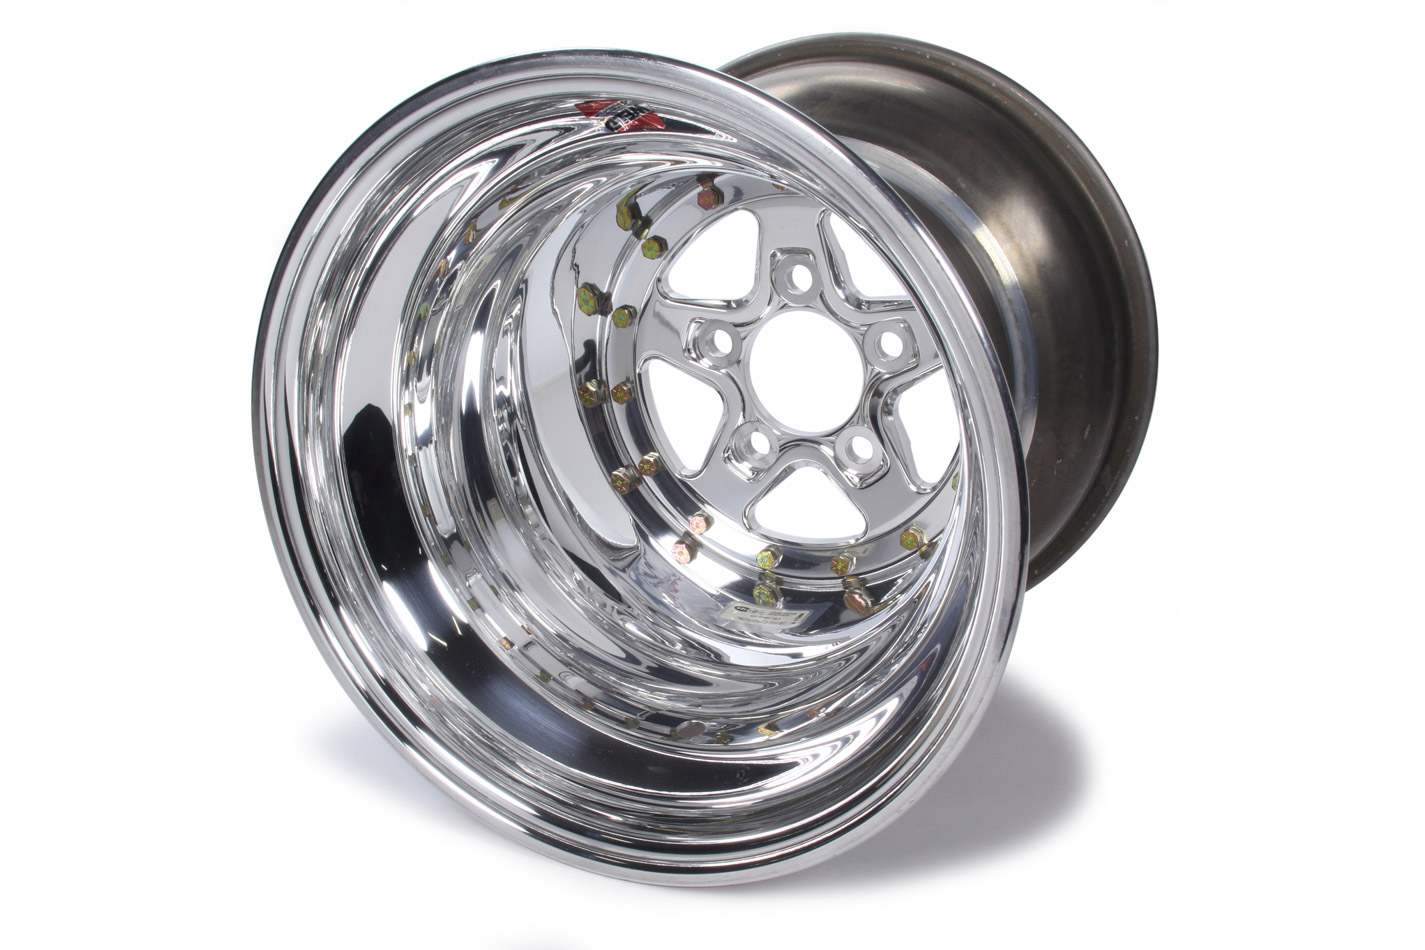 WELD RACING 15 X 15in Aluma Star 5 X 4.75in 7-3/8in BS P/N - 88-515284